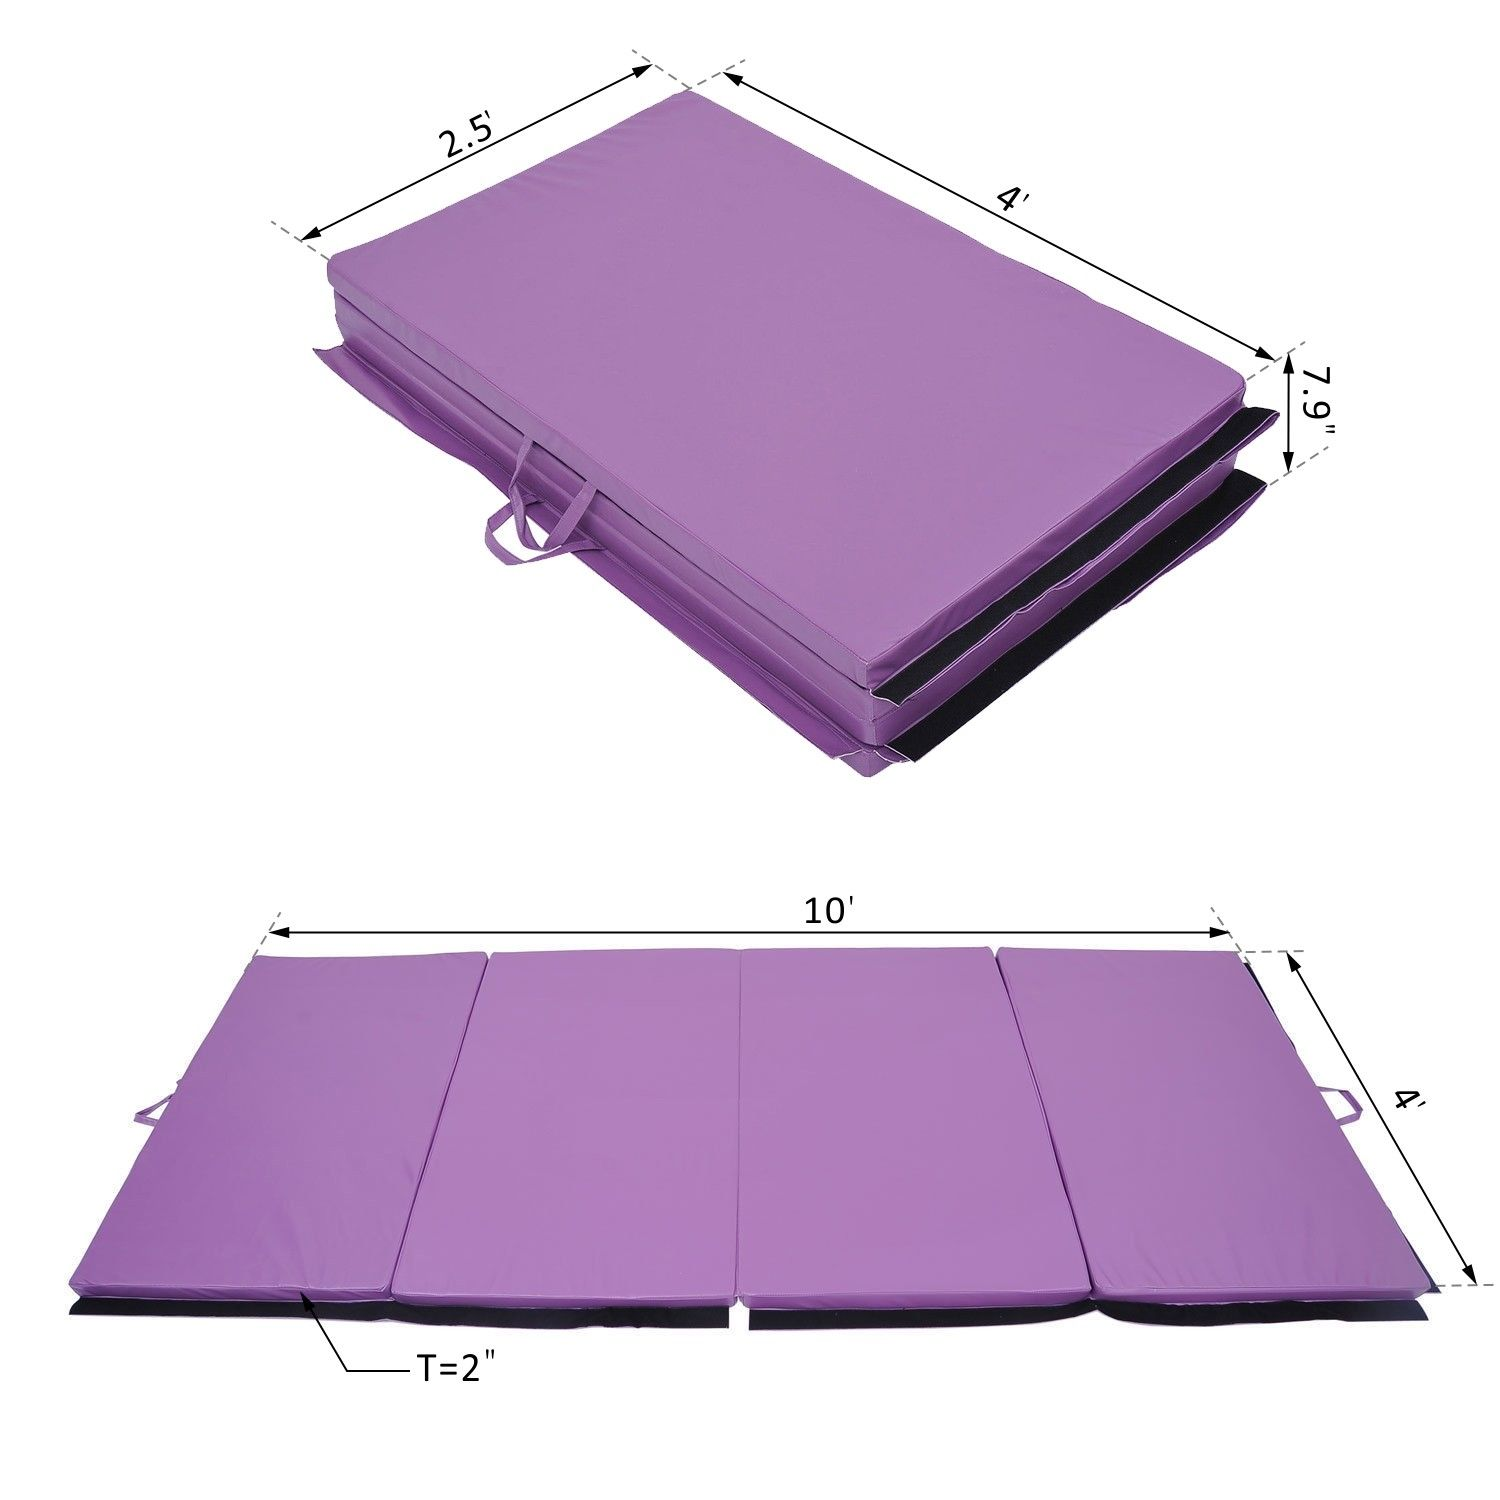 Portable-PU-Leather-Exercise-Gym-Mat-Stretching-Yoga-Sport-Tumbling-Pad-4-Panel